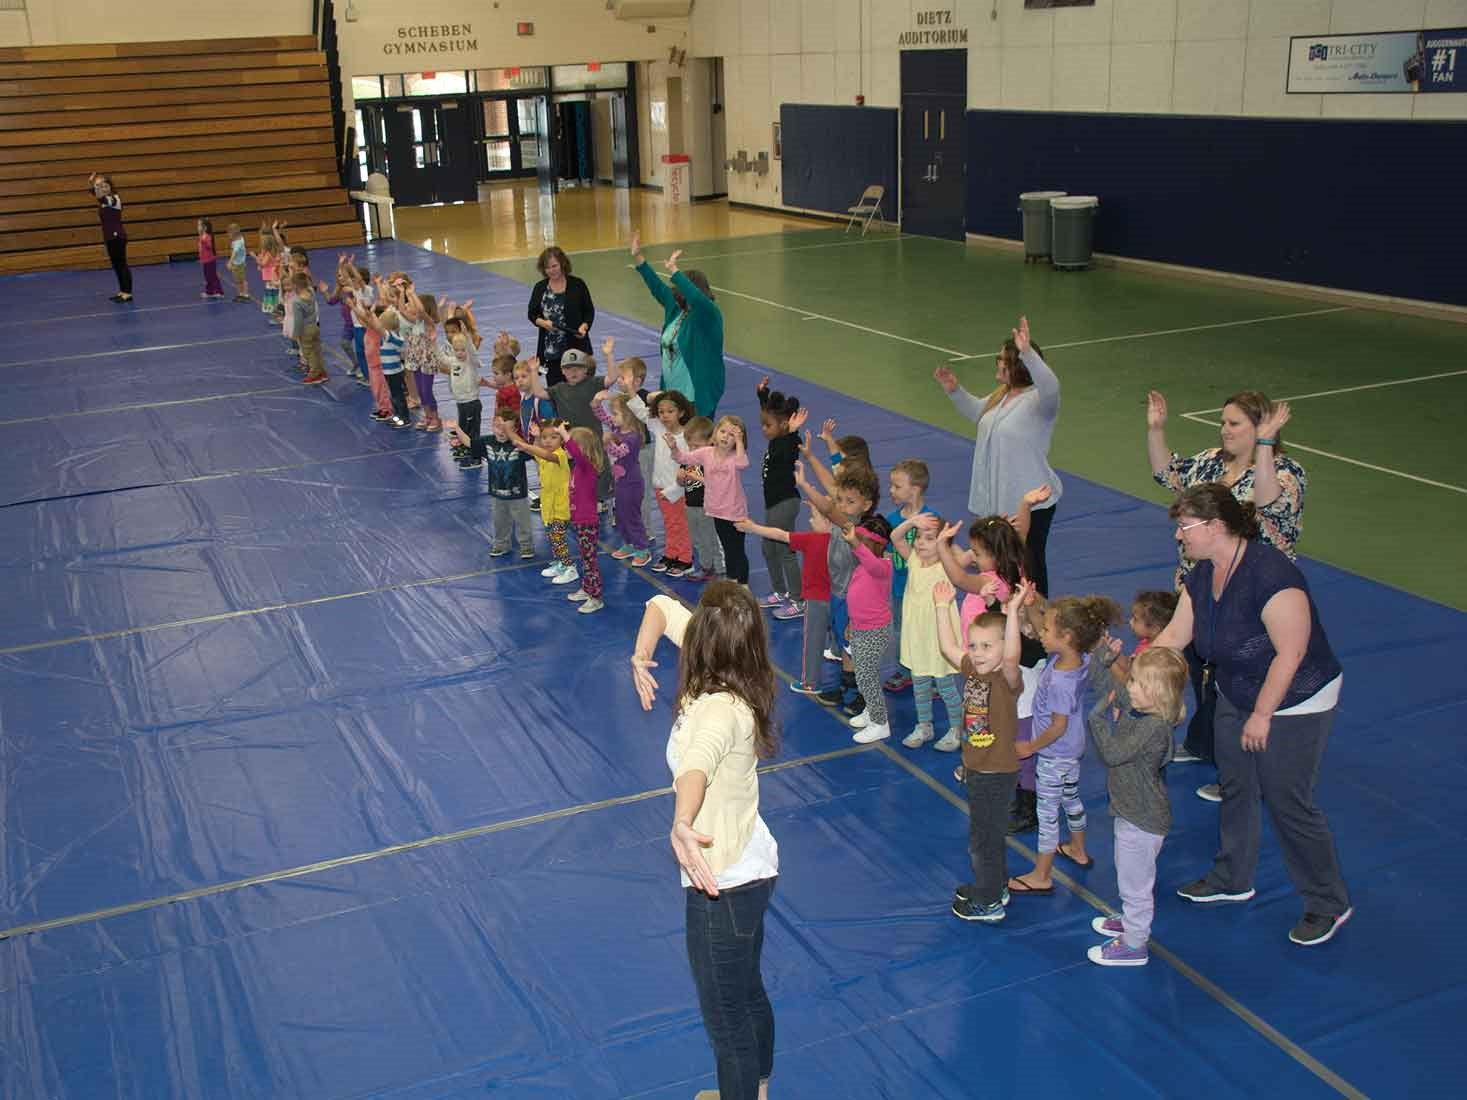 Students in the district's Early Learning Center performed a dance during the PEAK Award ceremony at Lloyd Memorial High School's Scheben Gymnasium.